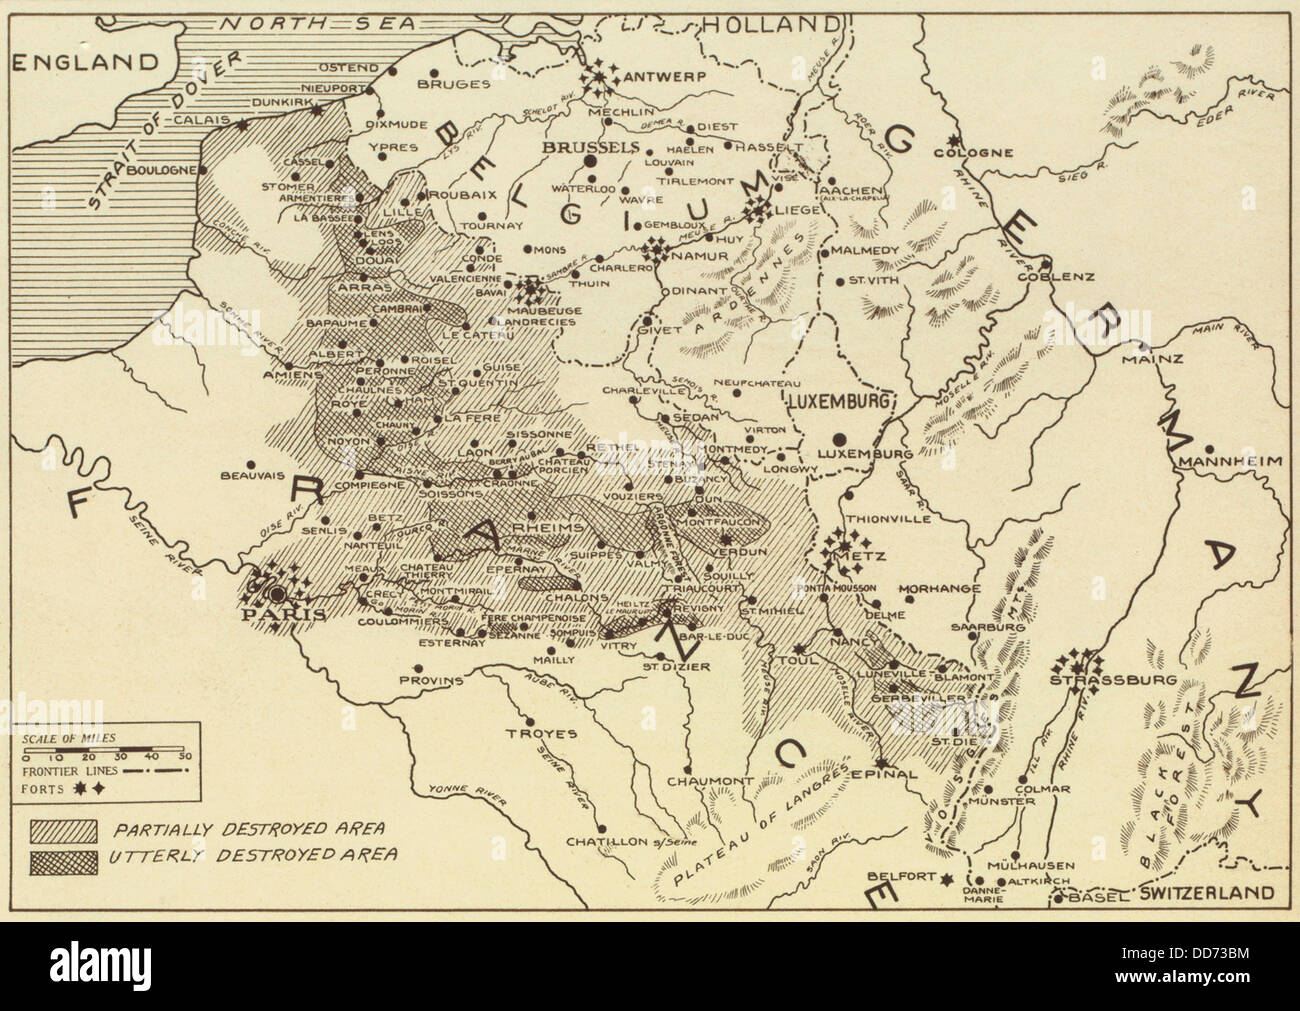 World war 1 map stock photos world war 1 map stock images alamy post world war 1 map of the ruined regions of france in 1919 bsloc2012415 gumiabroncs Image collections